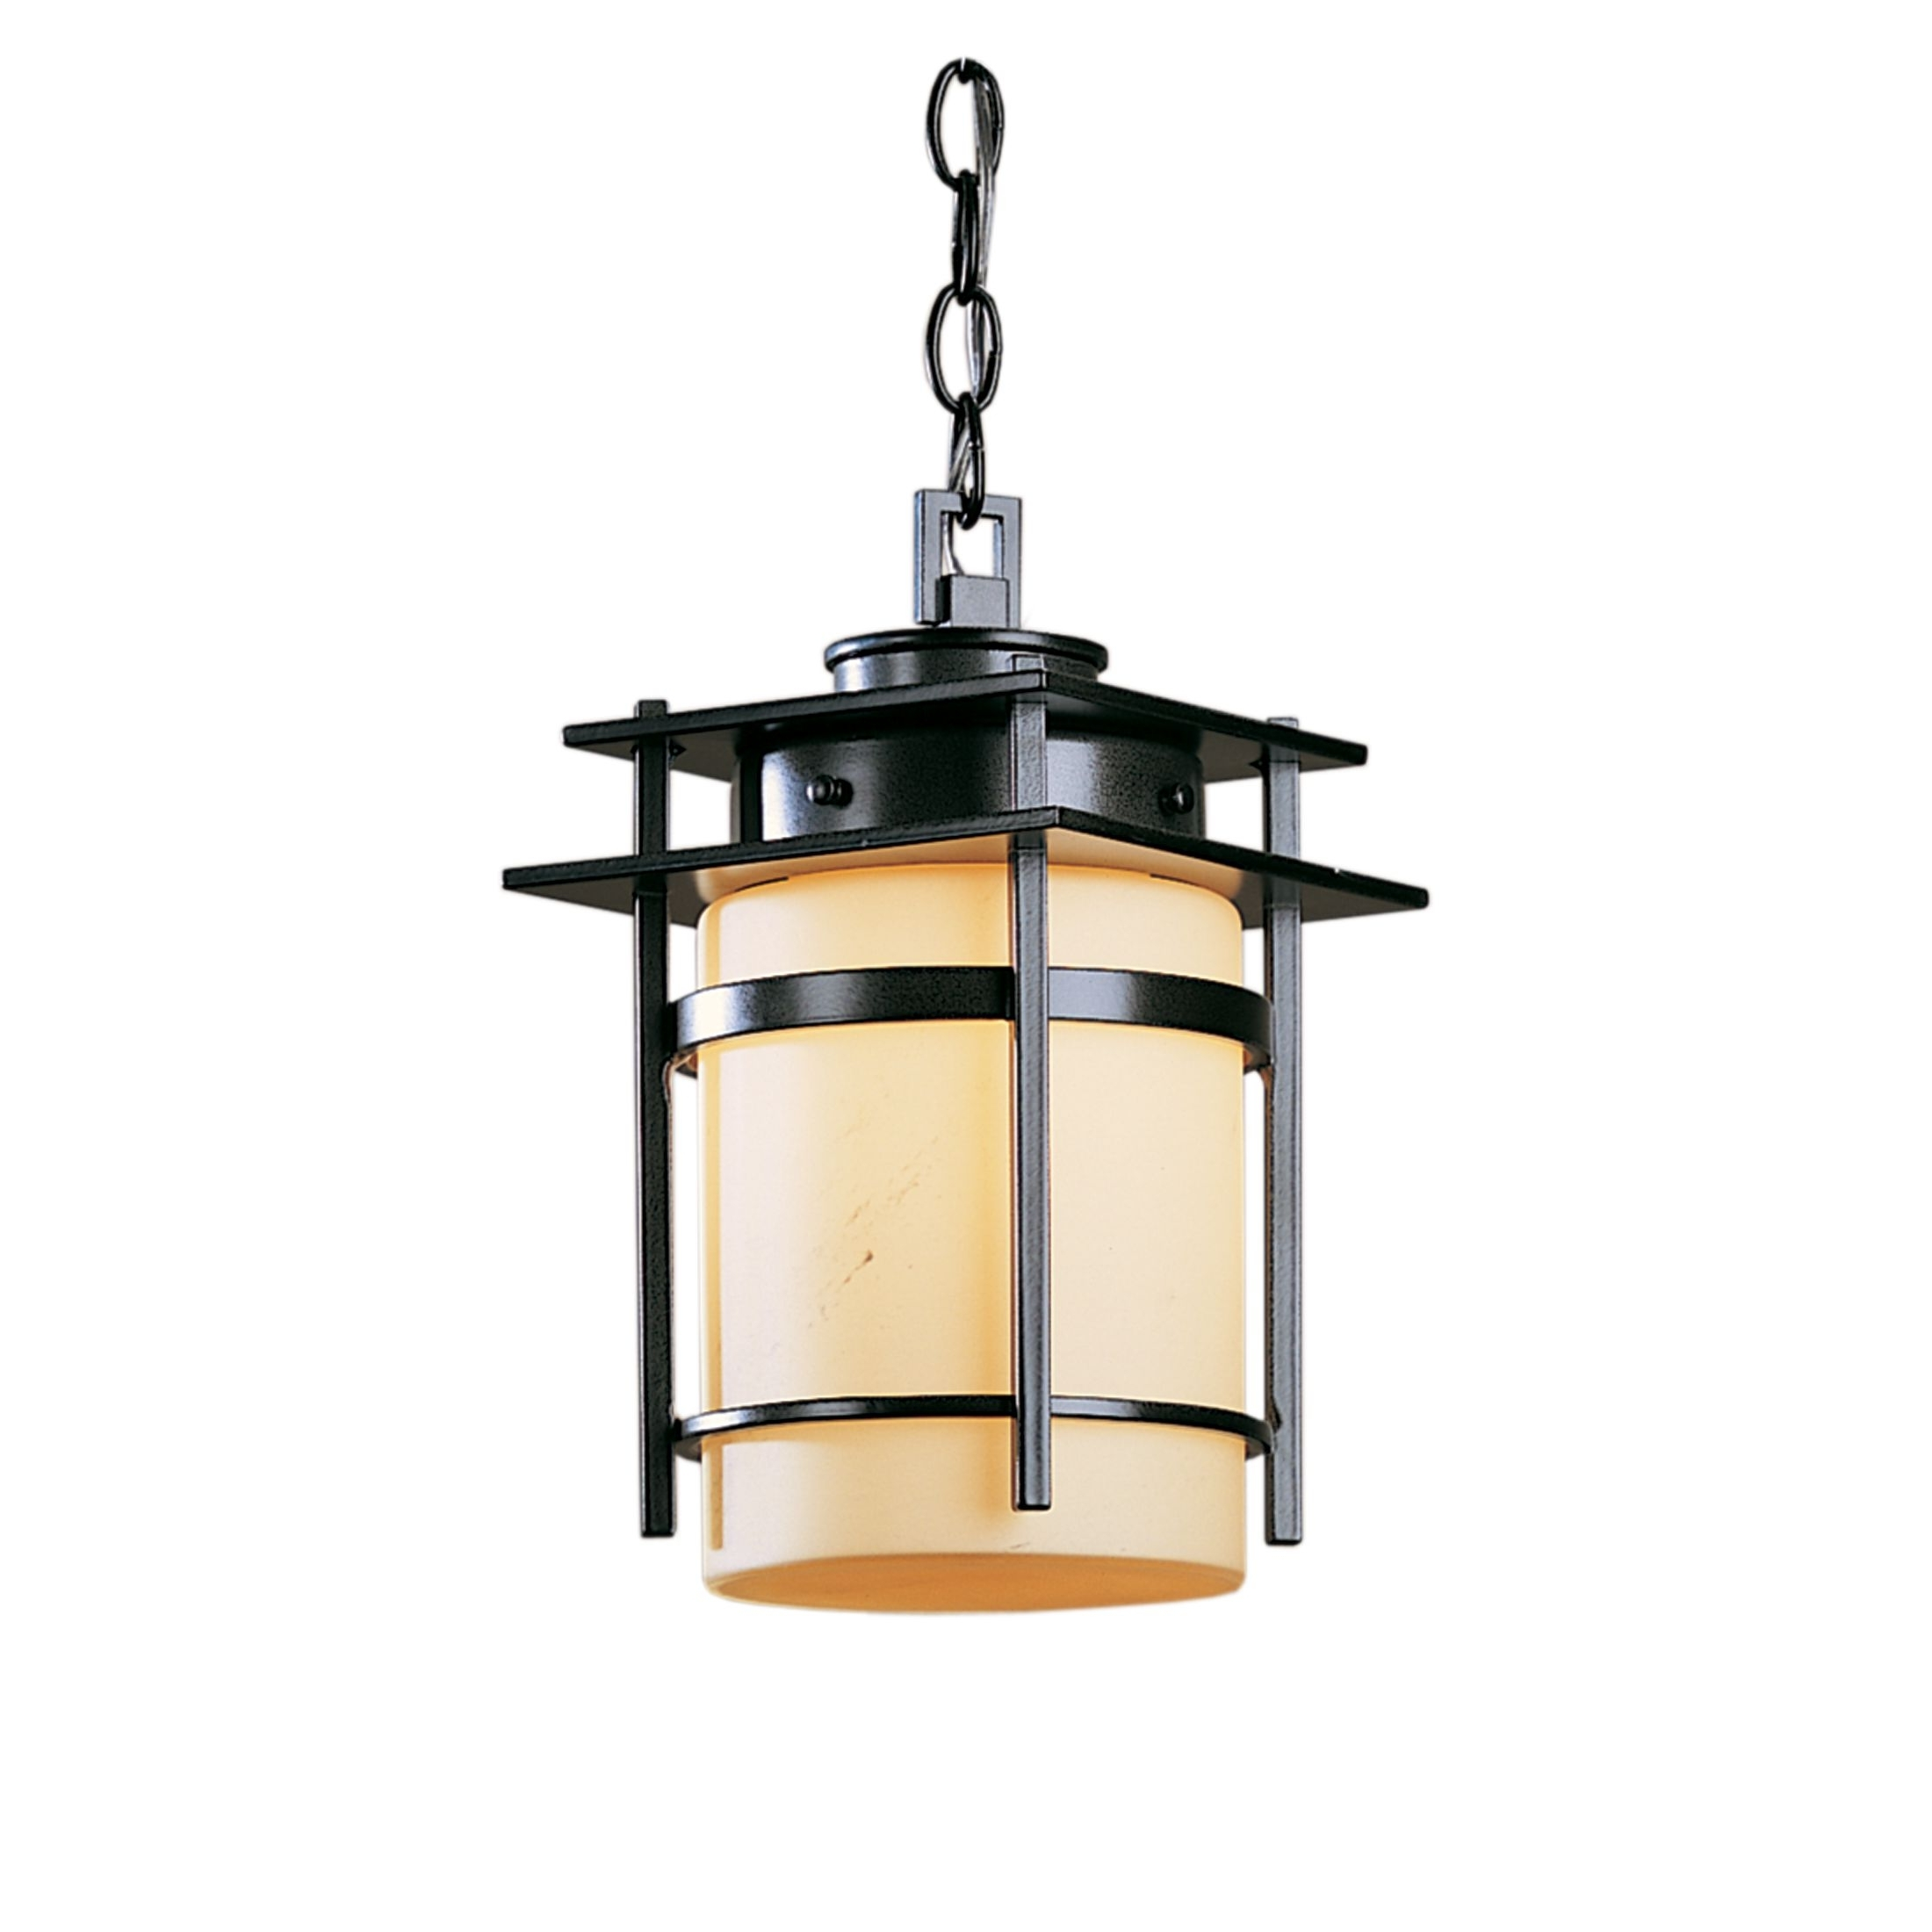 Fireplace : Outdoor Hanging Lights Lamps Expo Pendant Lighting Inside 2019 Outdoor Hanging Lights At Amazon (View 4 of 20)